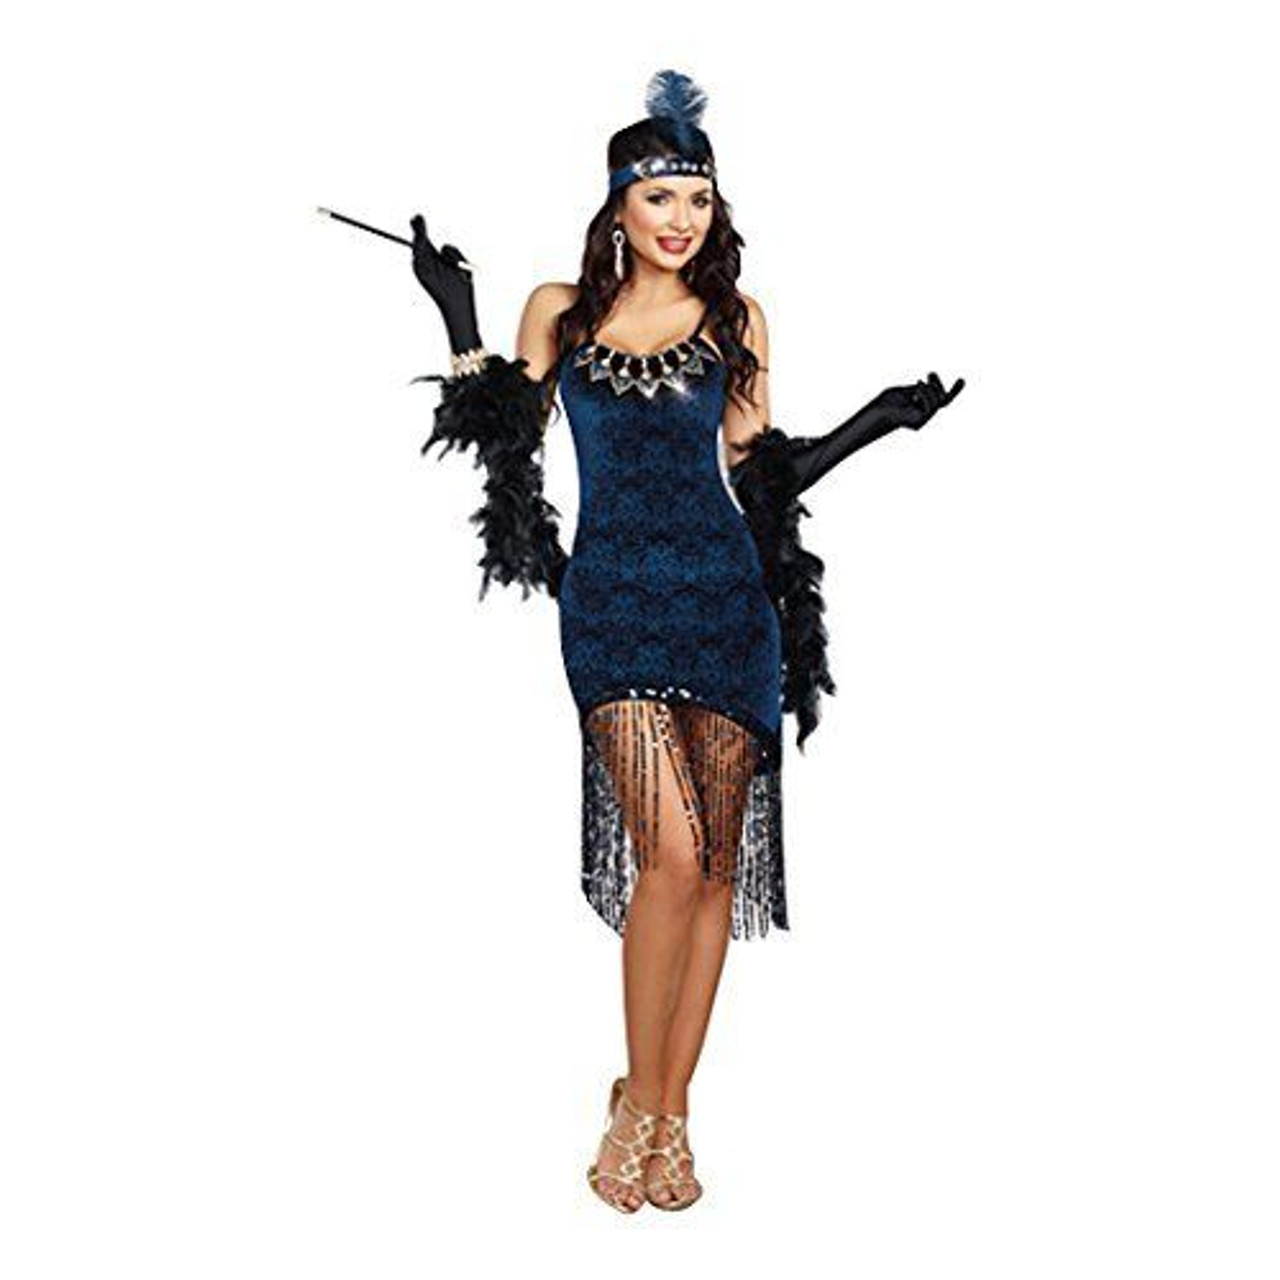 Adult Women Costume Night Party Dream Girl Gatsby New Ladies Fancy Dress Outfits